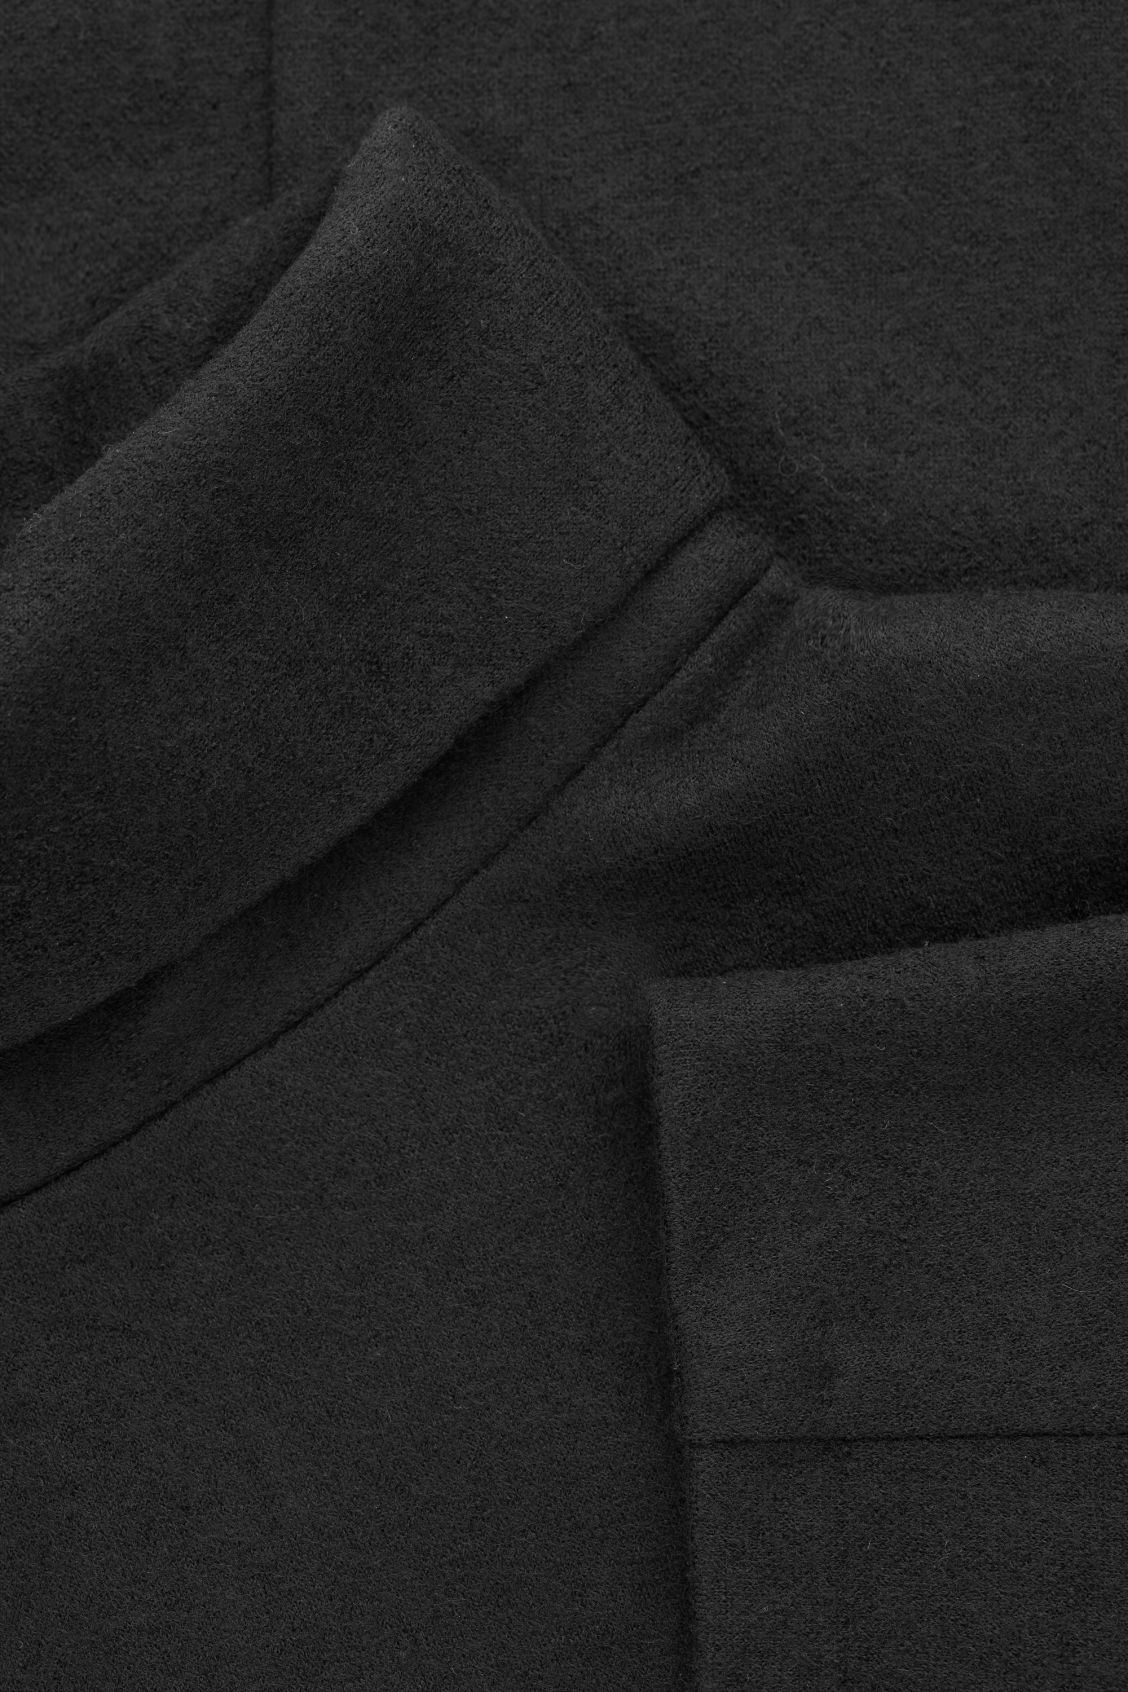 Side image of Cos jersey wool top with cocoon sleeves  in black